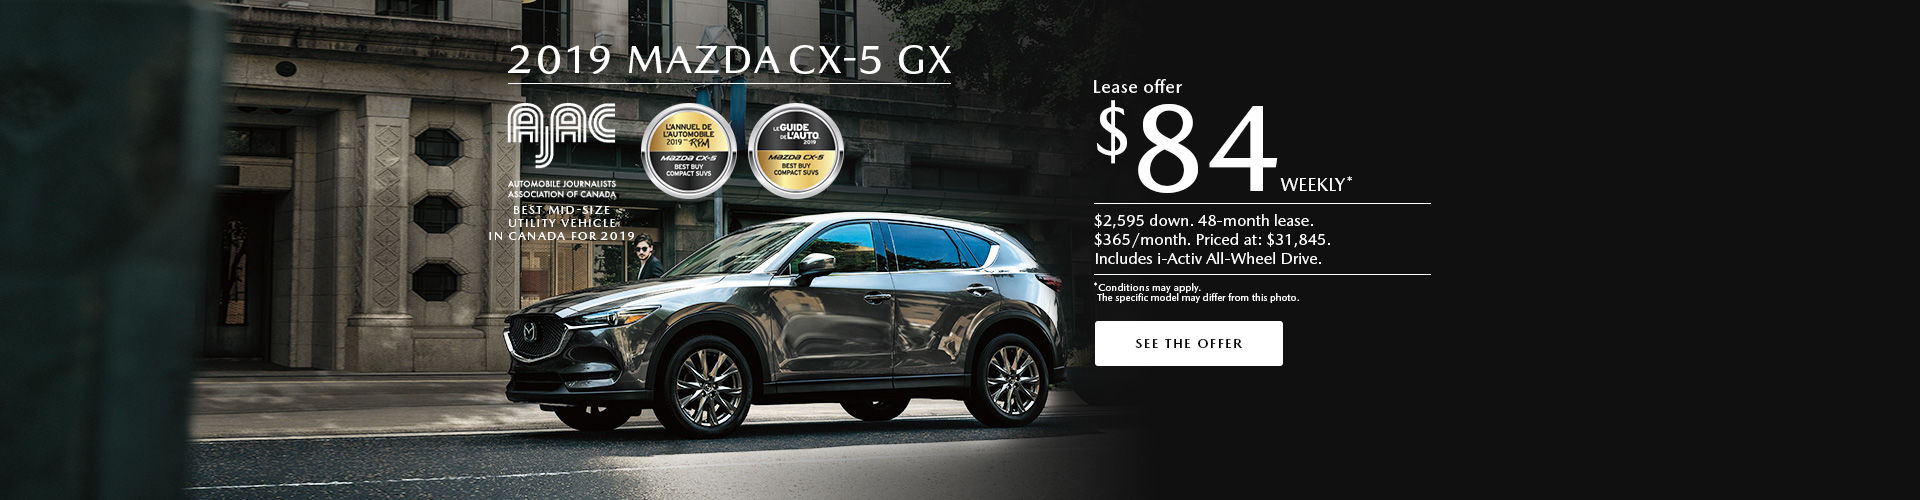 Mazda CX-5 Incentive July